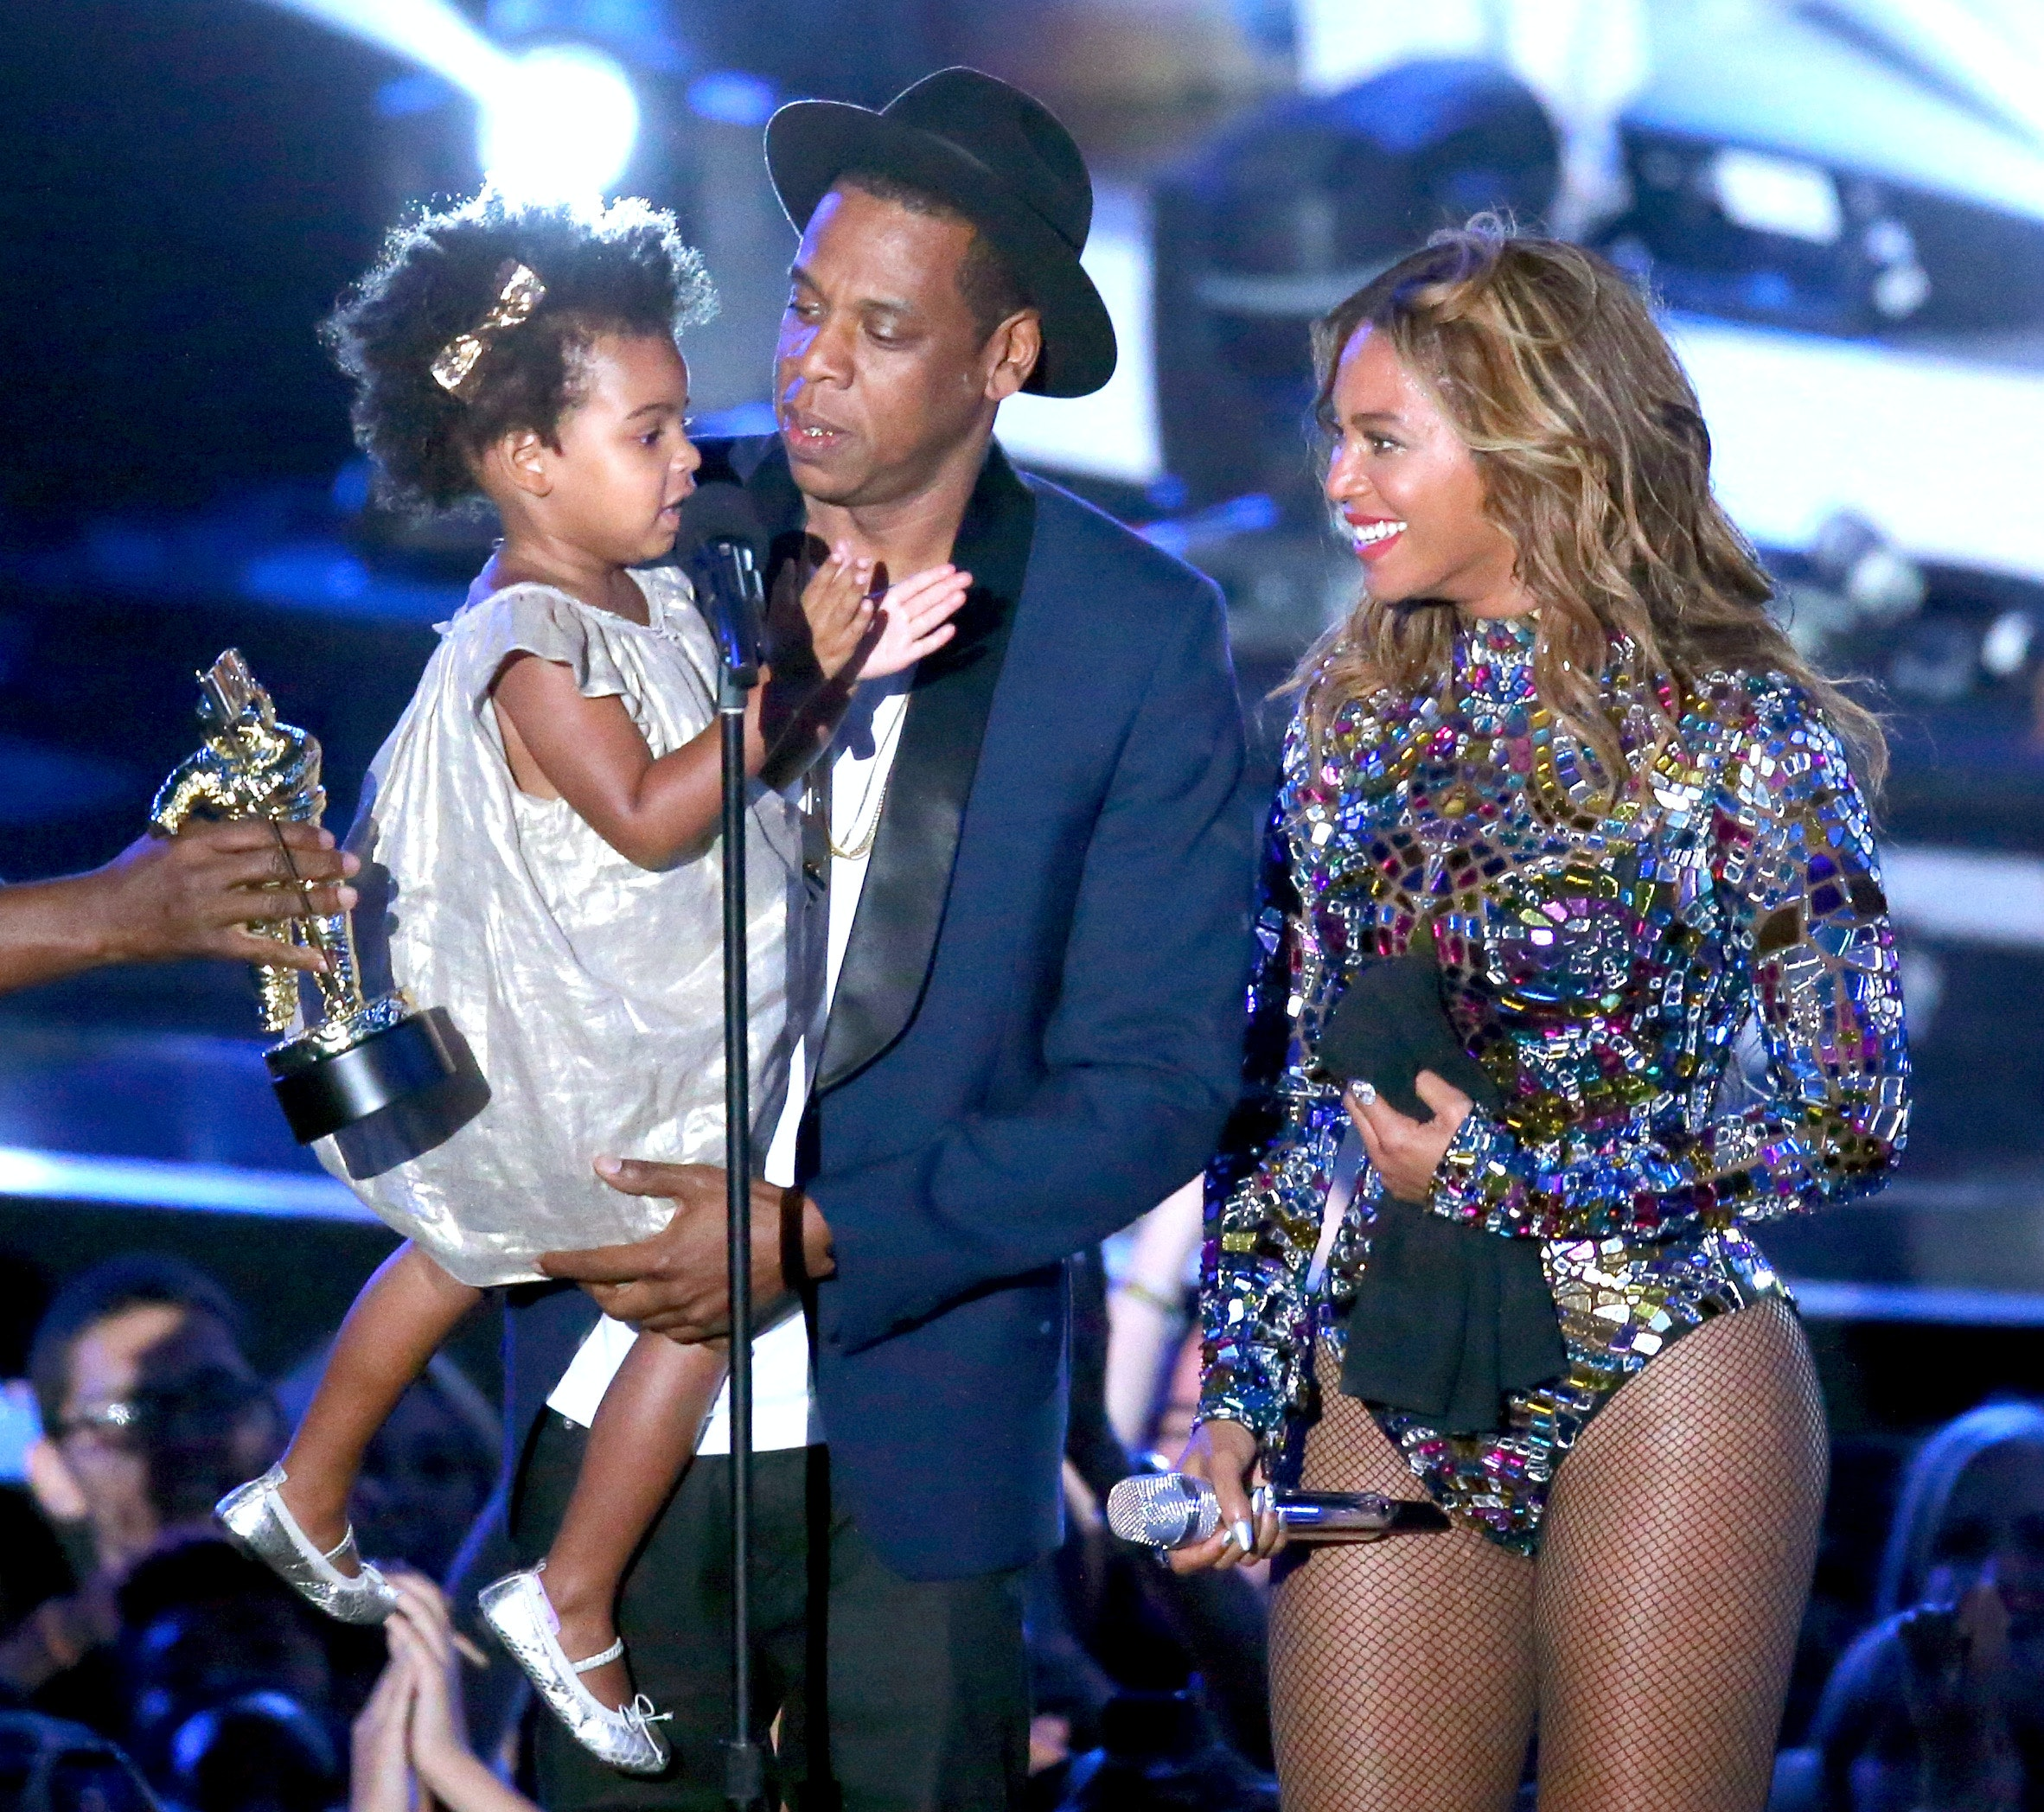 Blue Ivy Carter Wins Best Dressed at the Grammys in Gucci